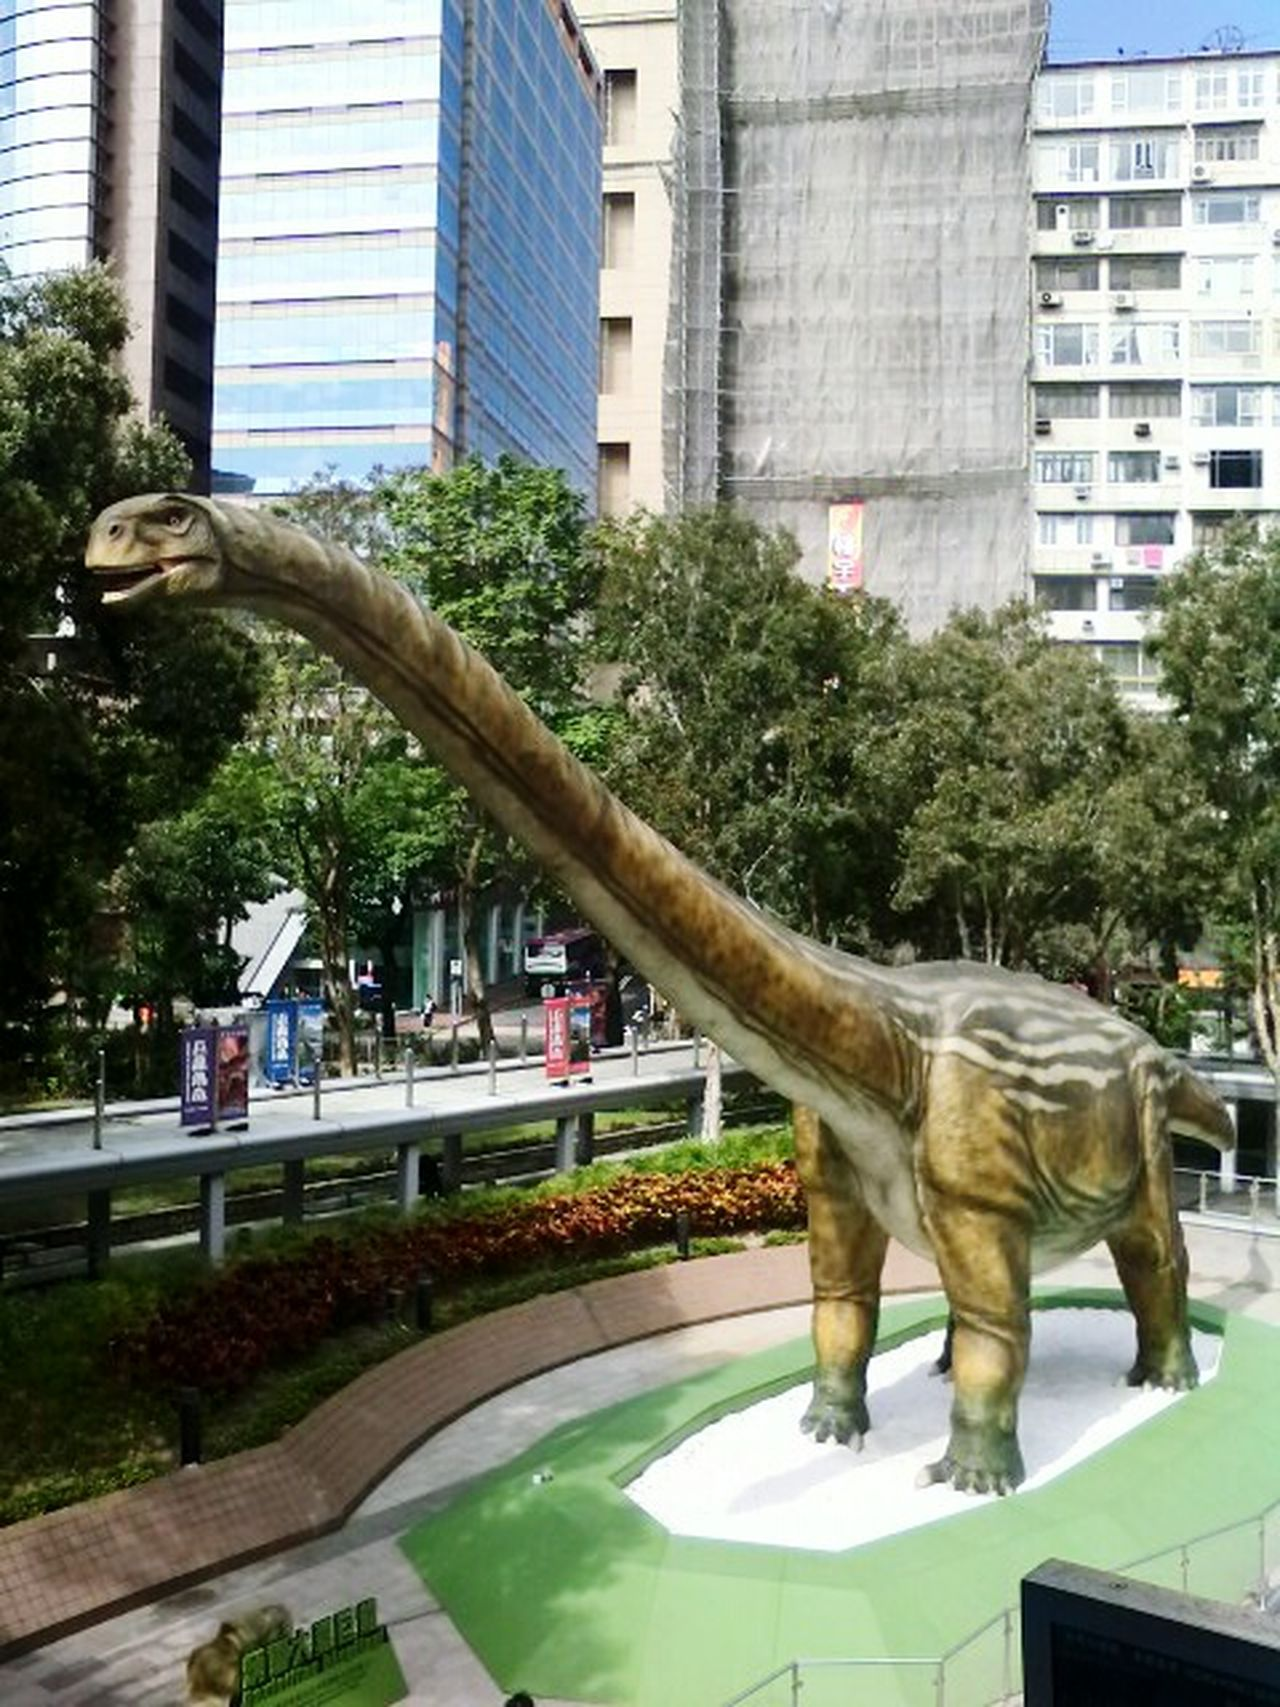 Dinosaur In Town Dinosaur Statue Street Side Park - Man Made Space No People